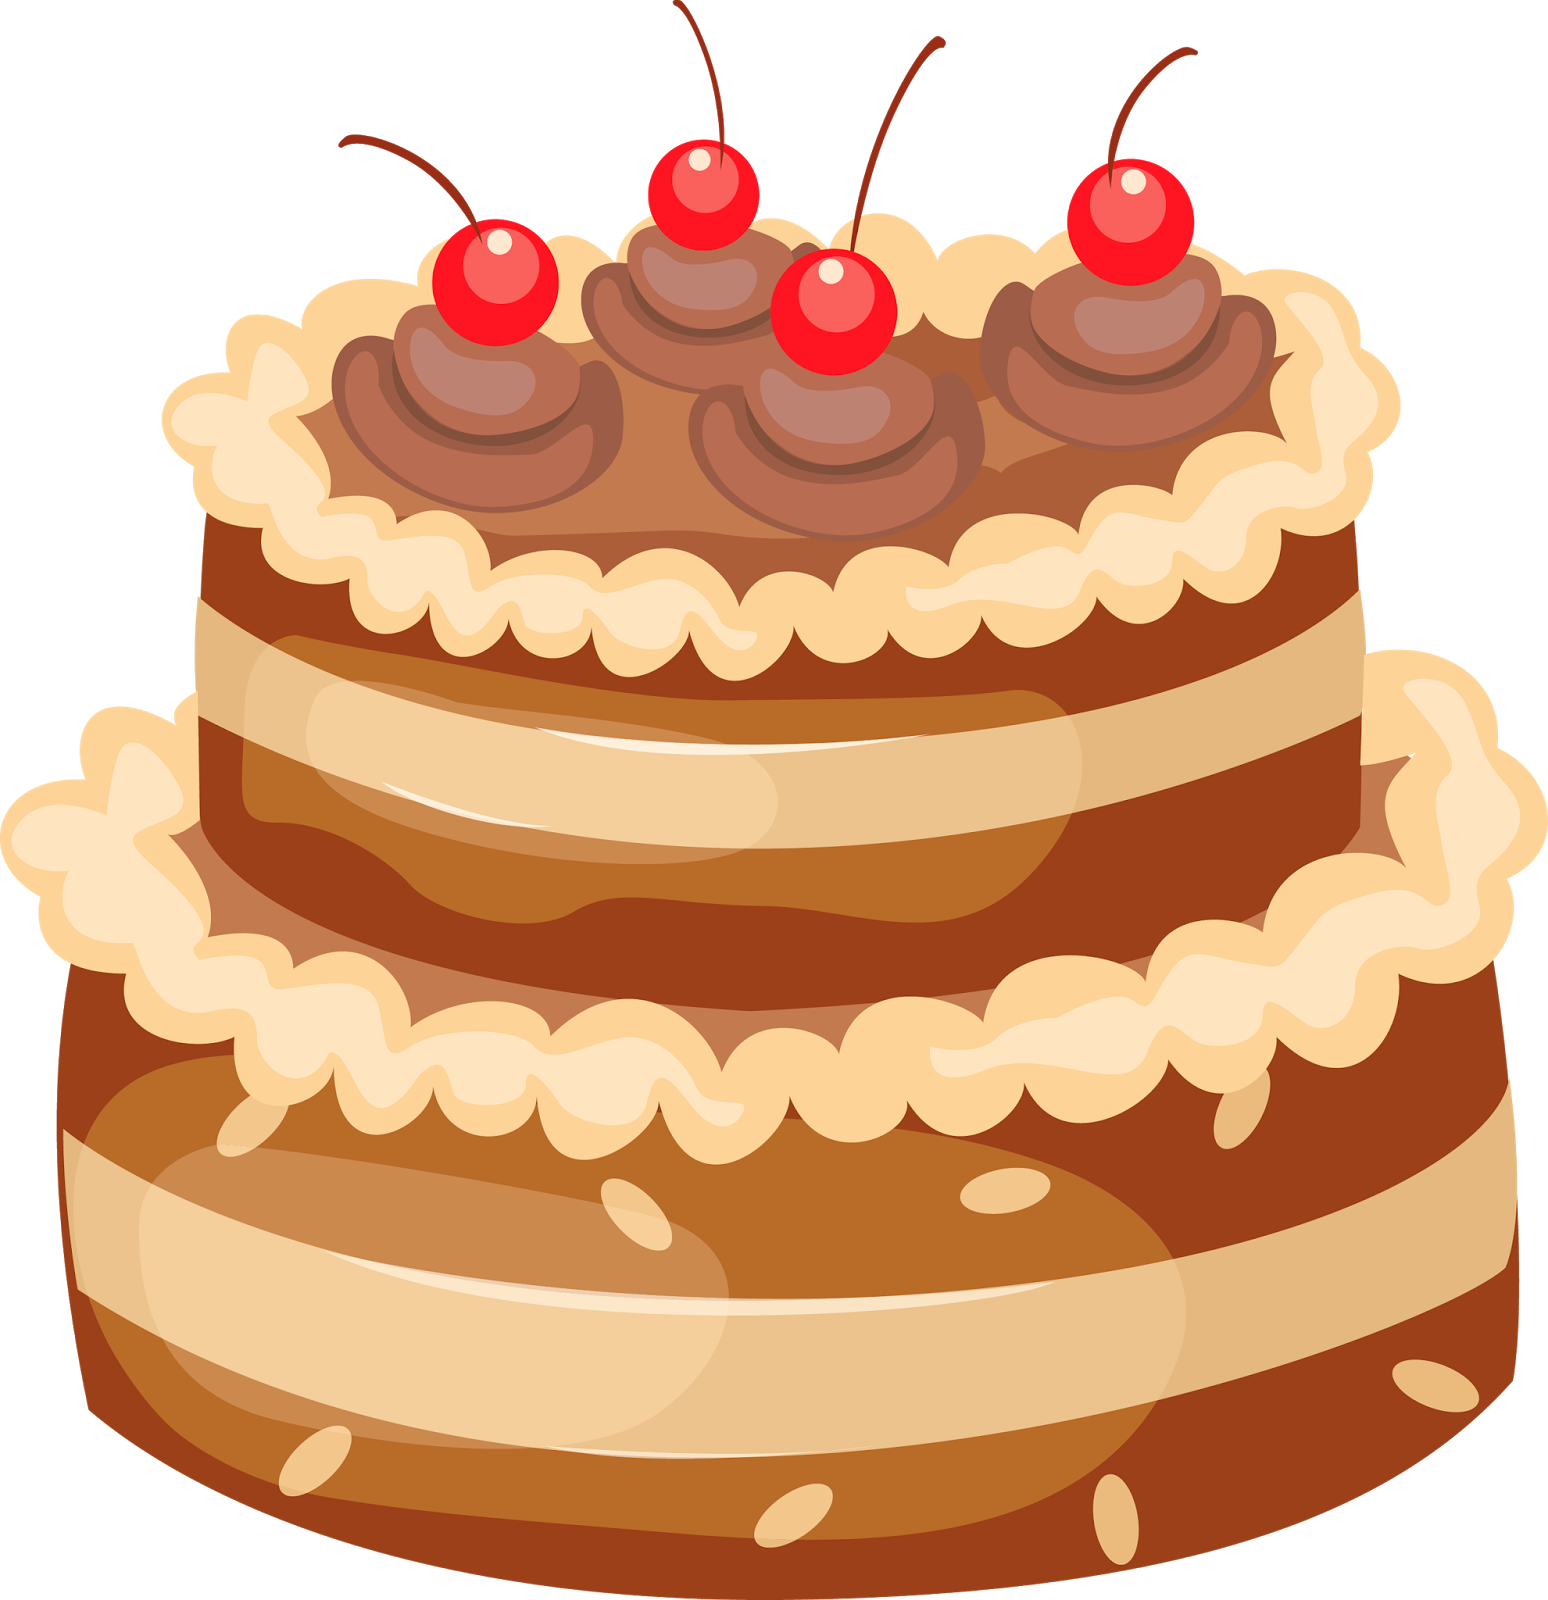 Happy birthday wishes greetings. Clipart cake victorian